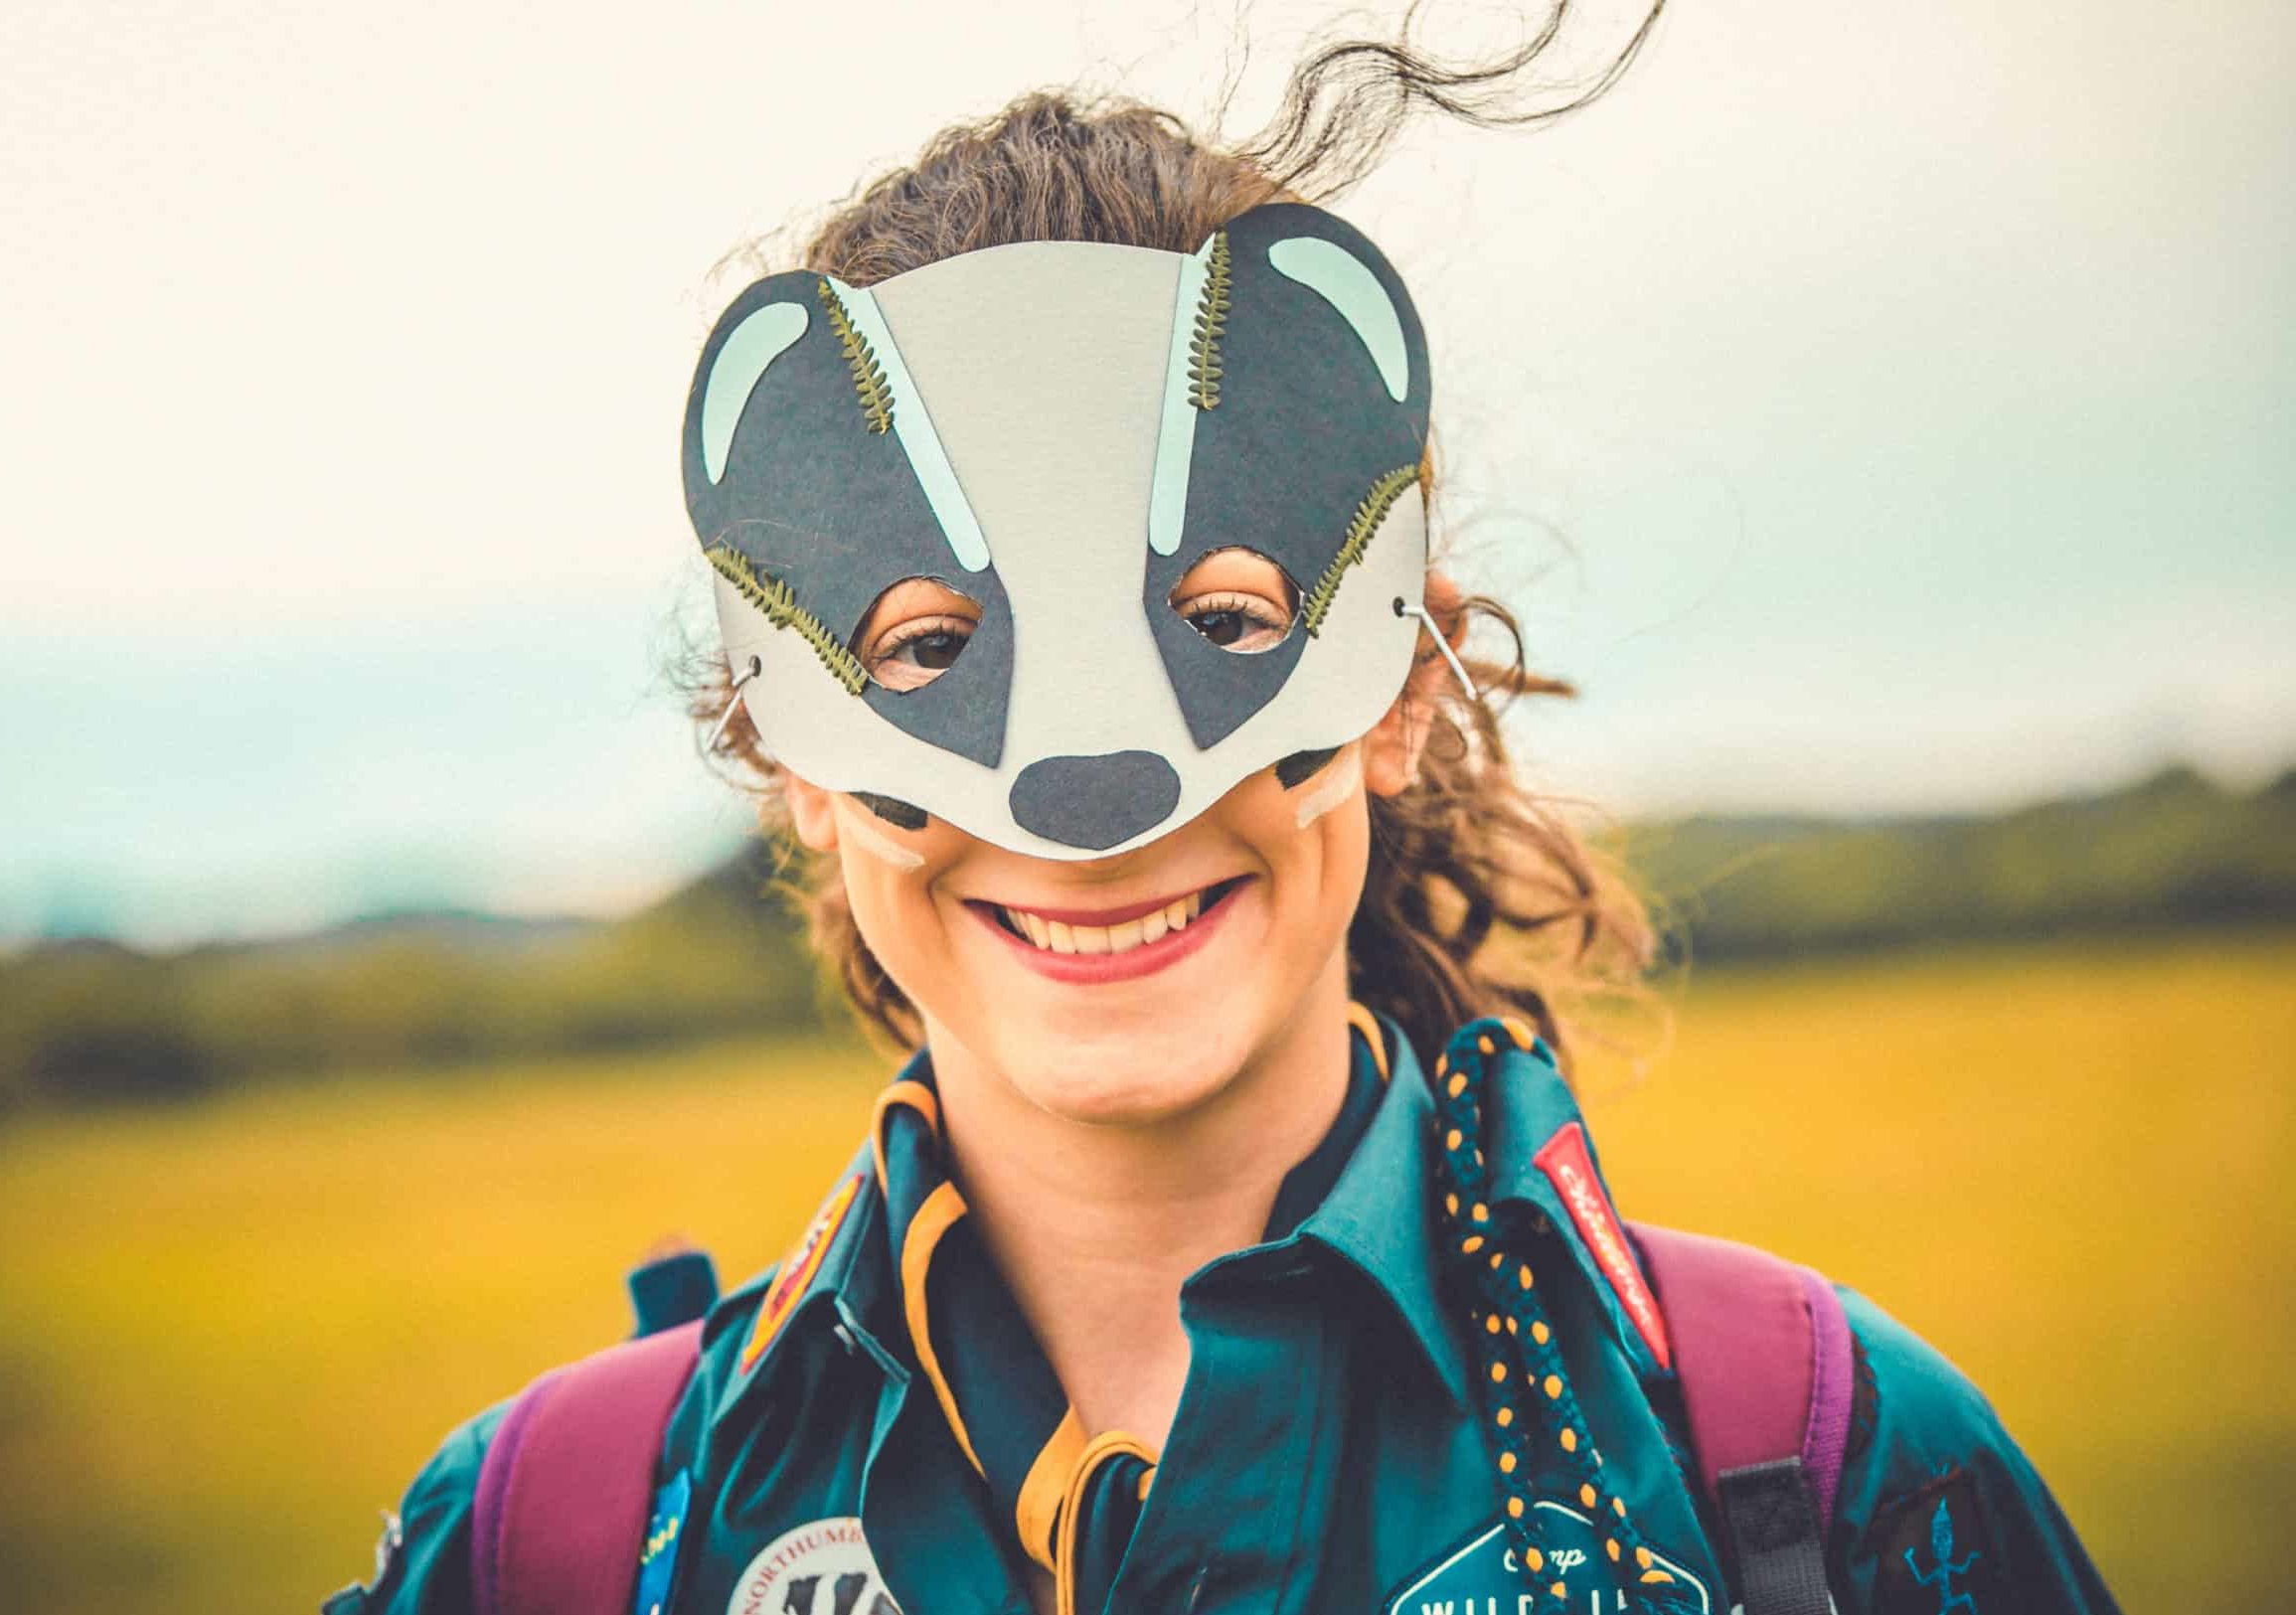 A patrol member wearing her badger mask she made at the mask making activity at Camp Wildfire. The UK's Best Alternative Festival. UK's Top Unique Event. A summer weekend break in a forest near London and Kent. An outdoor woodland retreat featuring adventure activities, live music, DJs, parties and camping. Half summer adventure activity camp, half music festival, for adults only.